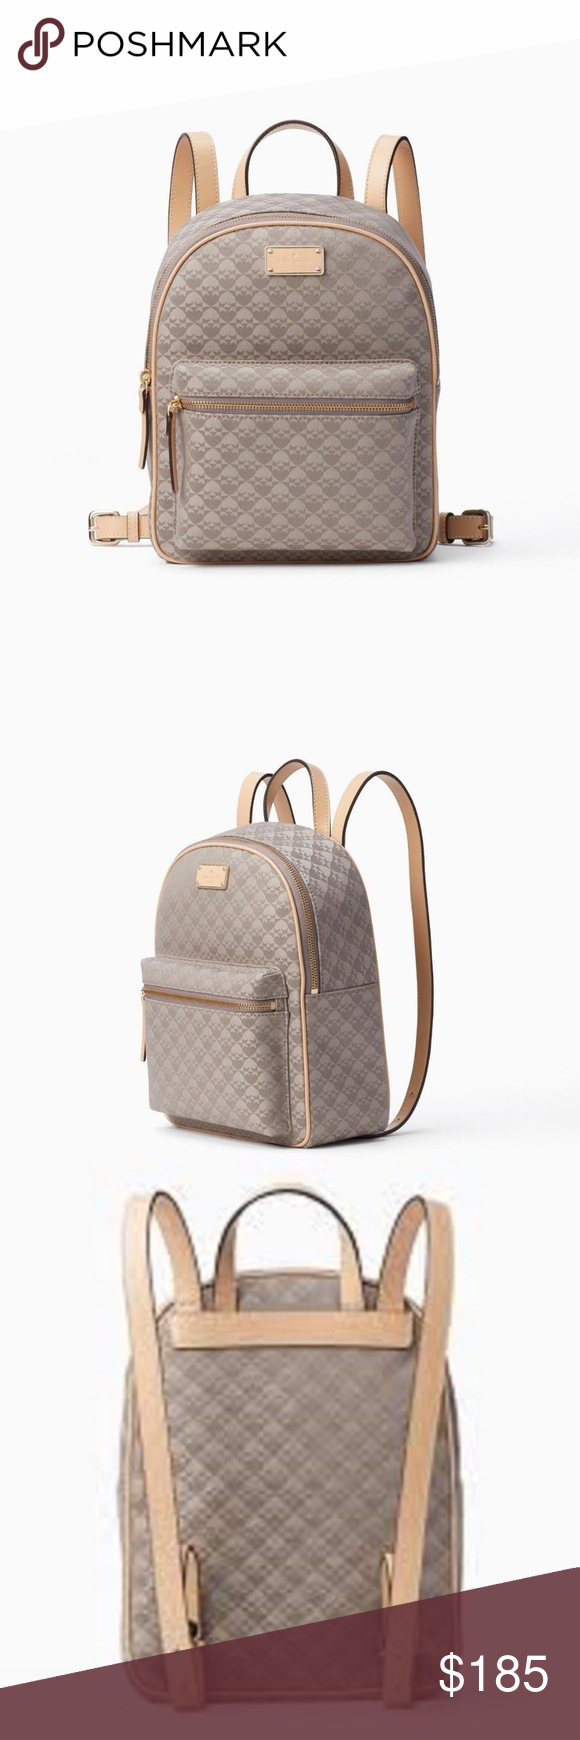 NWT Kate Small Bradley Penn Place Fabric Backpack Description Up For Sale  is one Brand New 4da92d3bebfc6